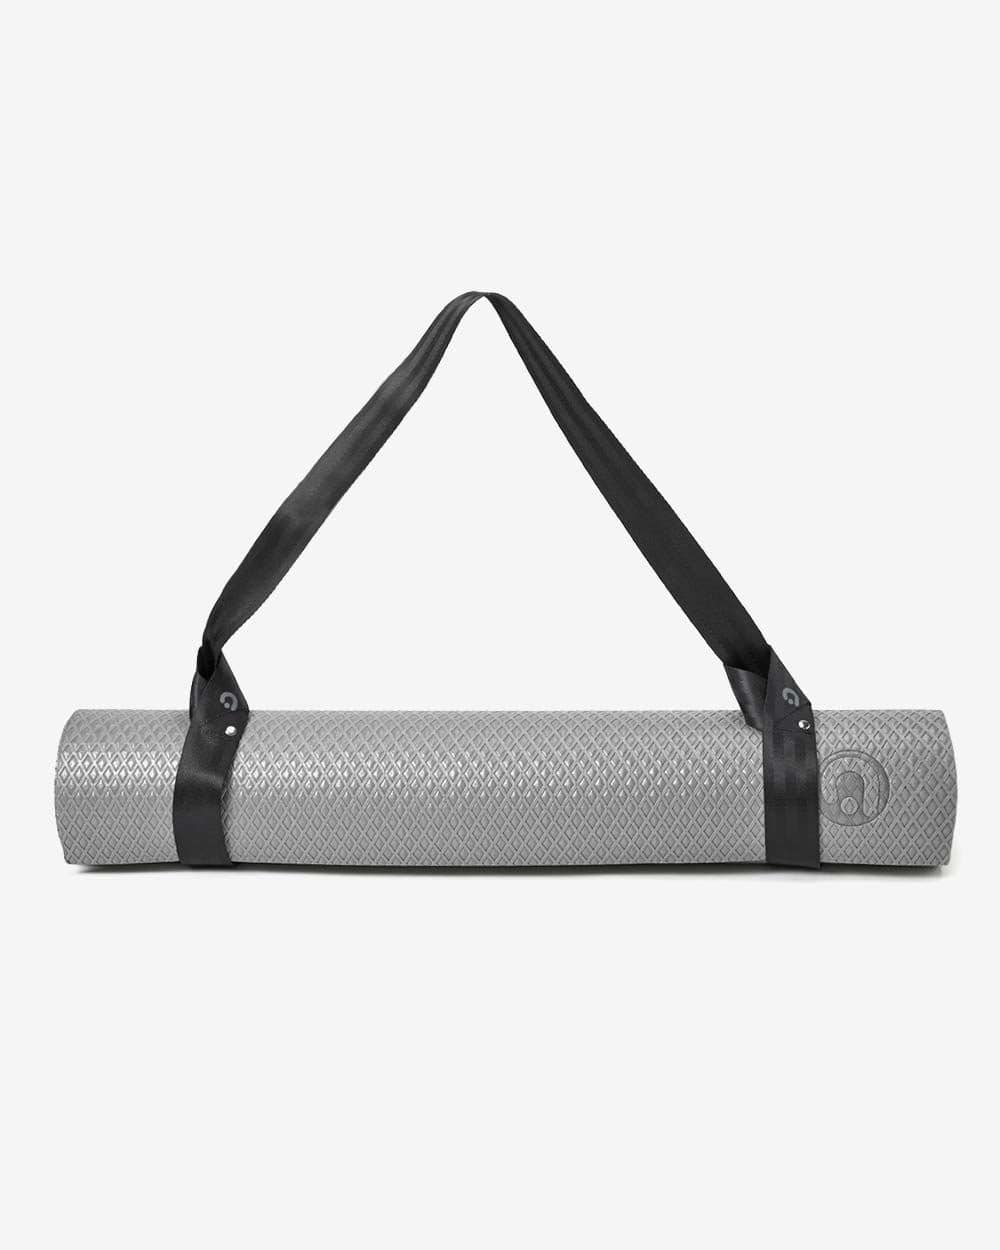 exercise kovida mat yoga with high workout density strap anti product carrying tear